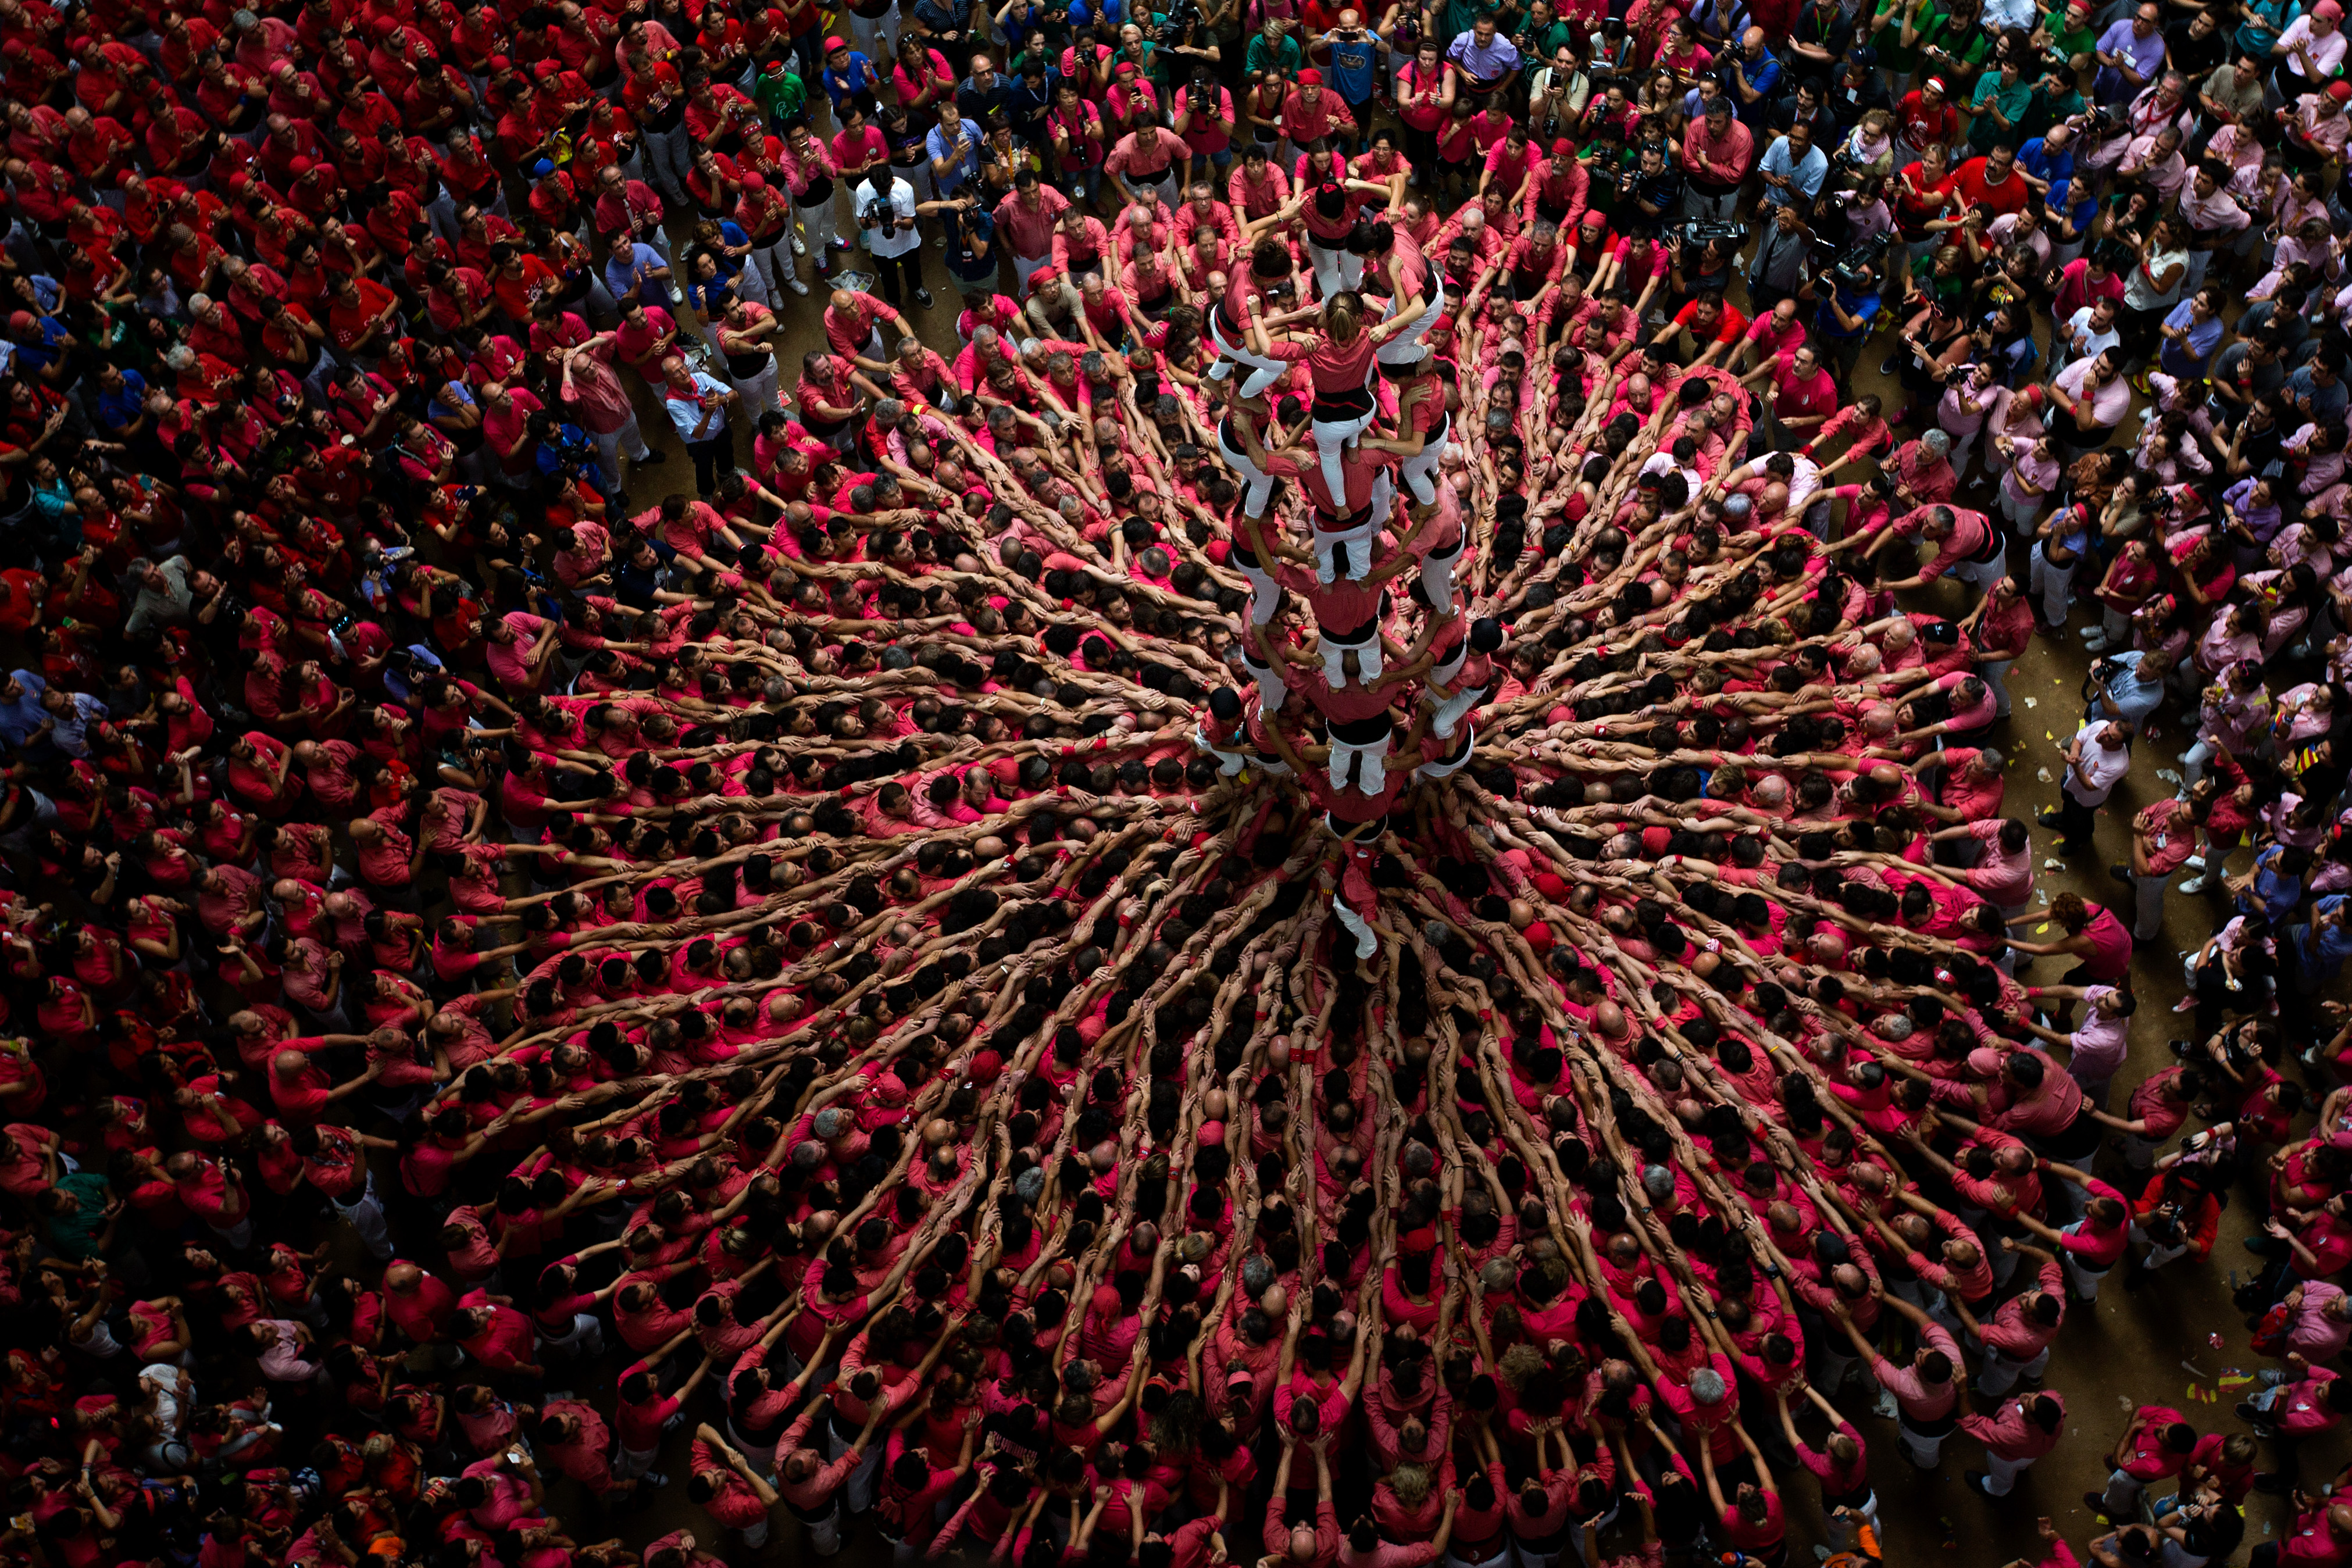 "Members of Vella de Xiquets de Valls try to complete their human tower during the Human Tower Competition in Tarragona, Spain, on Oct. 2. The tradition of building human towers, or Castells, dates back to the 18th century and takes place during festivals in Catalonia, where ""colles"", or teams, compete to build the tallest and most complicated towers. (AP Photo/Emilio Morenatti)"